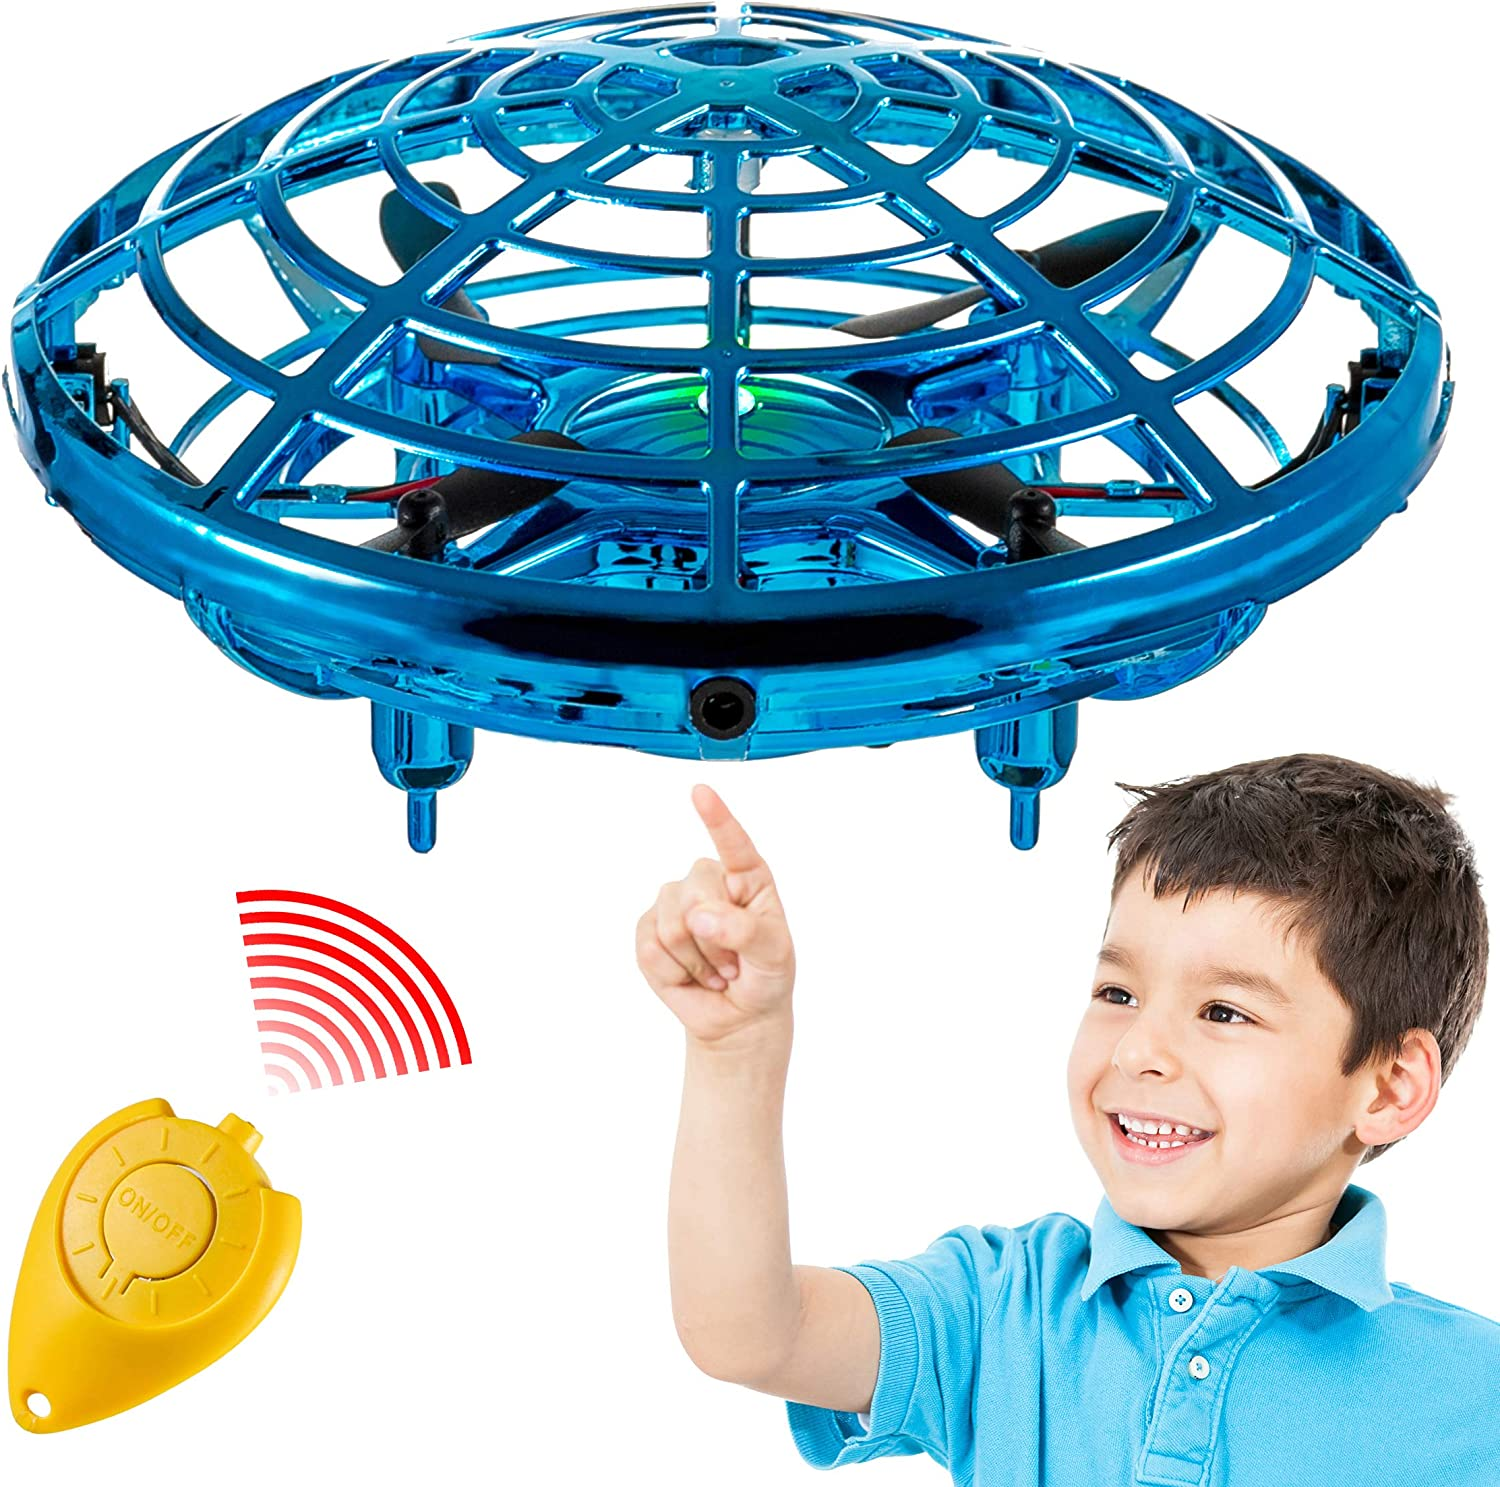 Blue Mini/Hand Operated Drone AFDEAL Pocket Hover Toy Interactive Aircraft Upgraded Gesture and Remote Control Flying Drone 360/° Rotating LED Lights Stress Reliever for Boys and Girls Kids Adults